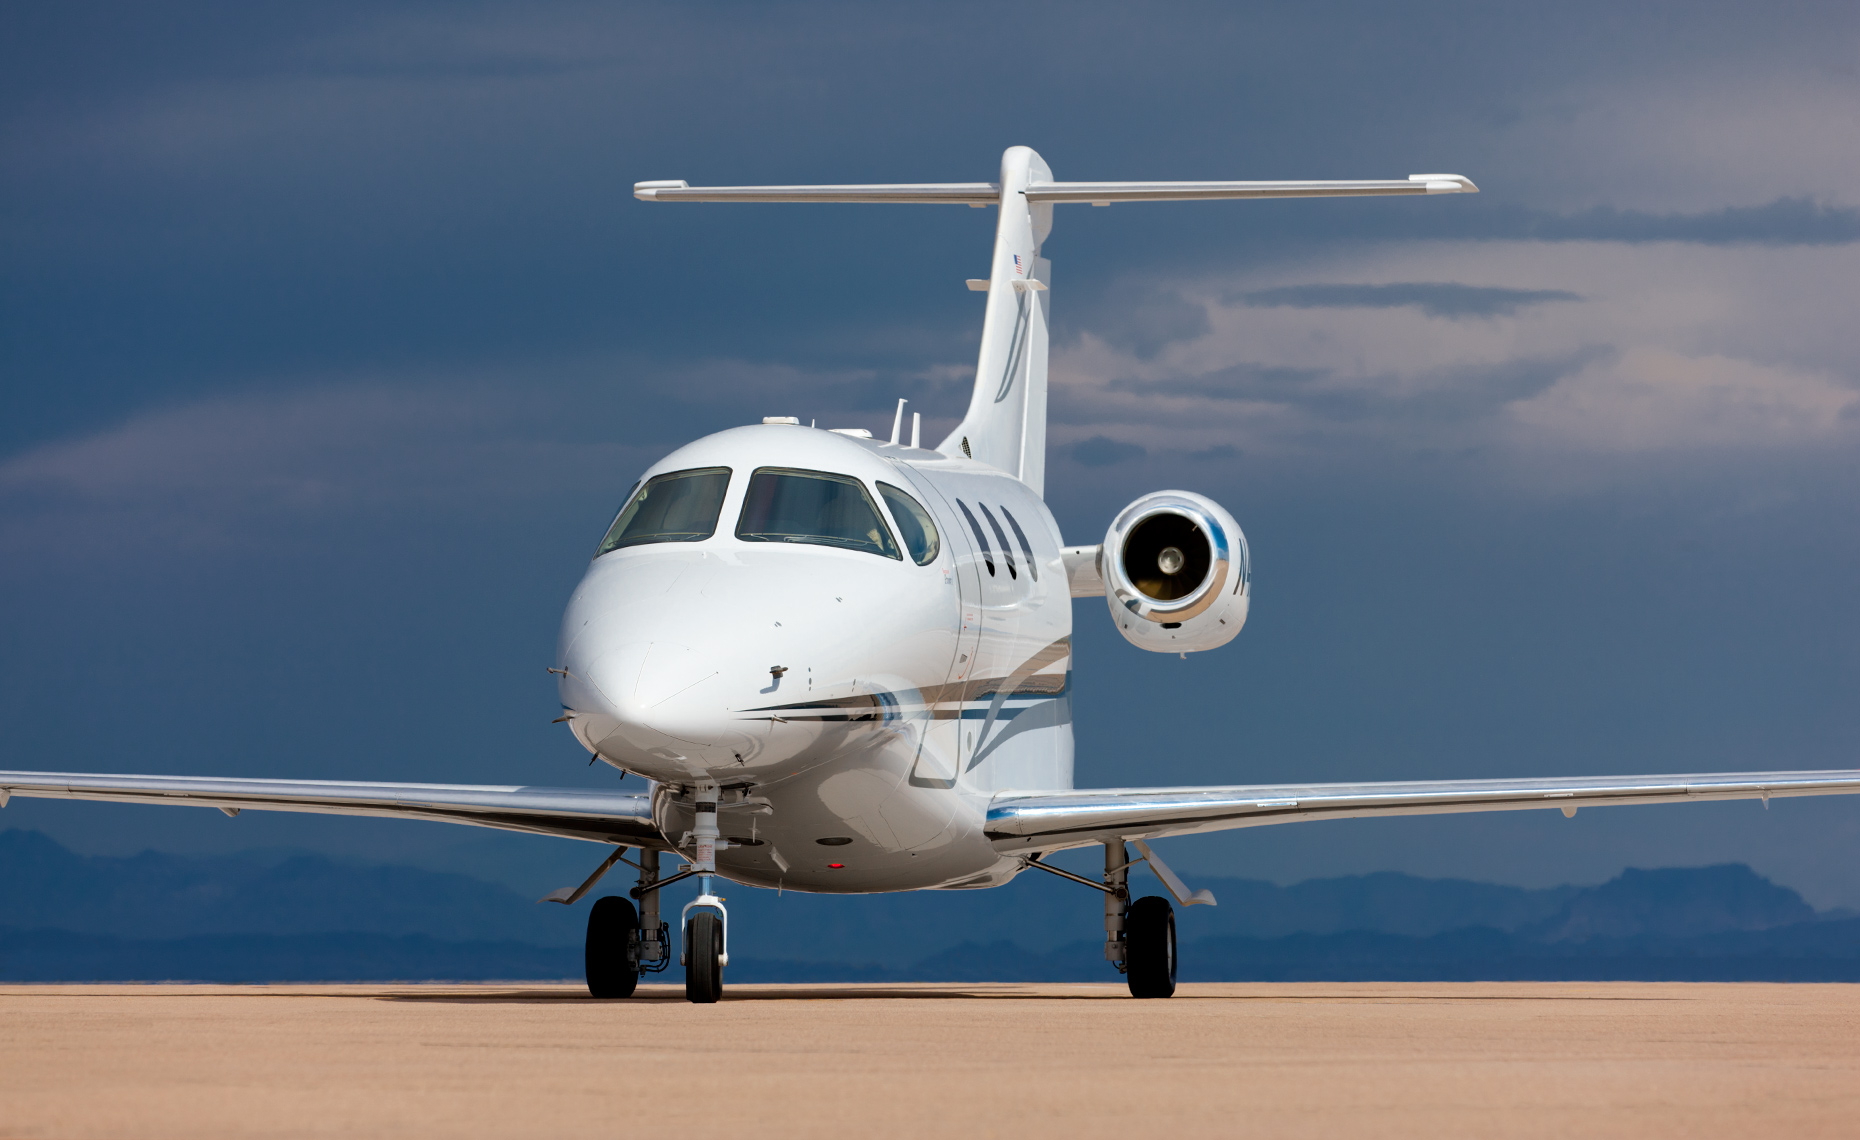 Beech Premier private jet